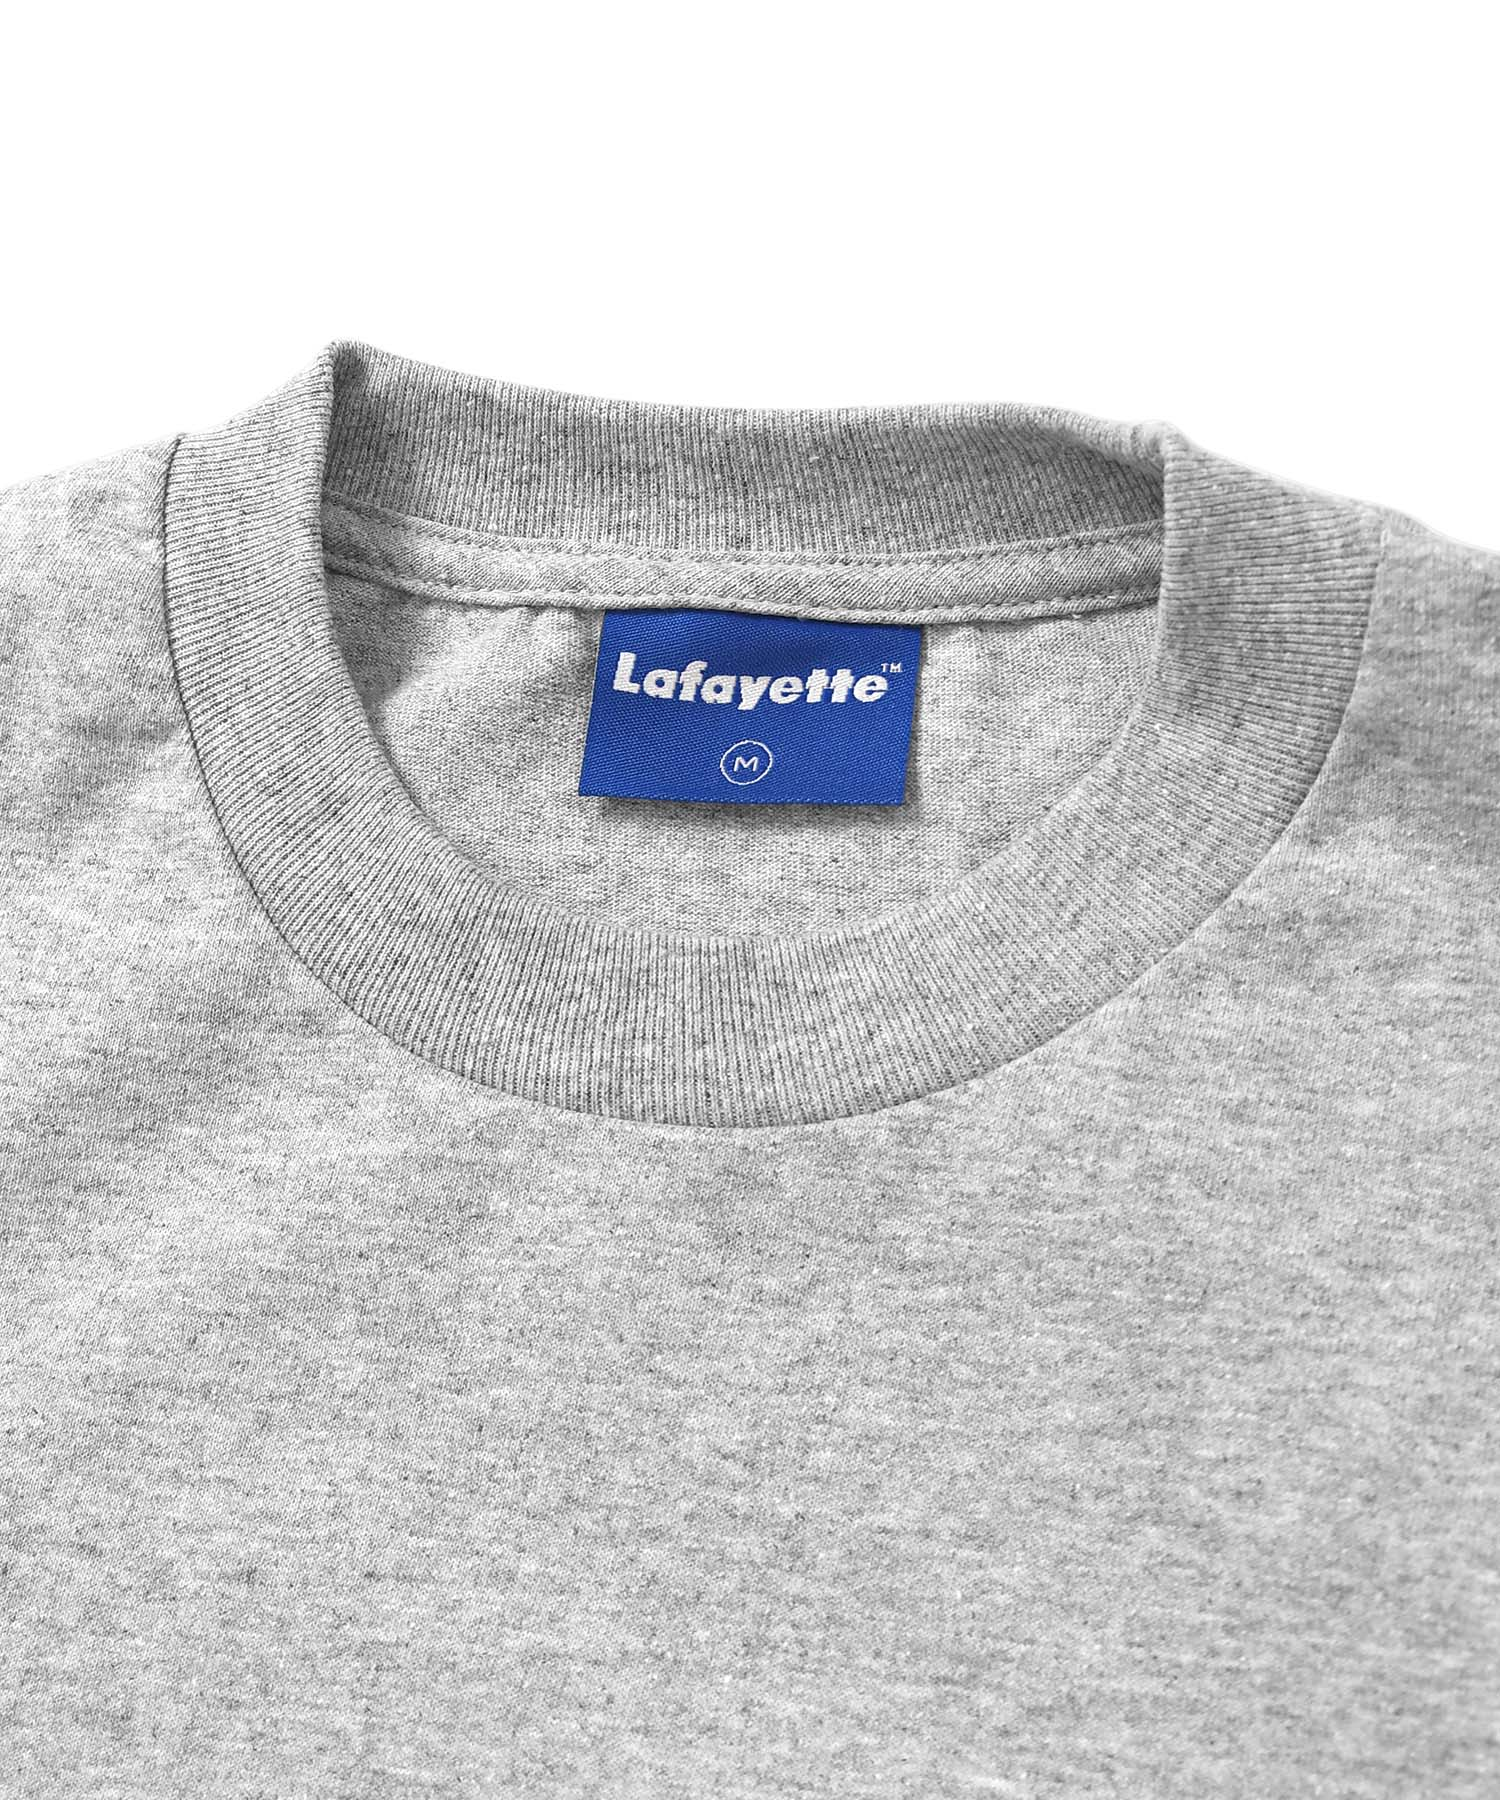 Lafayette ALL ABOUT SKILLS TEE LS200112 HEATHER GRAY